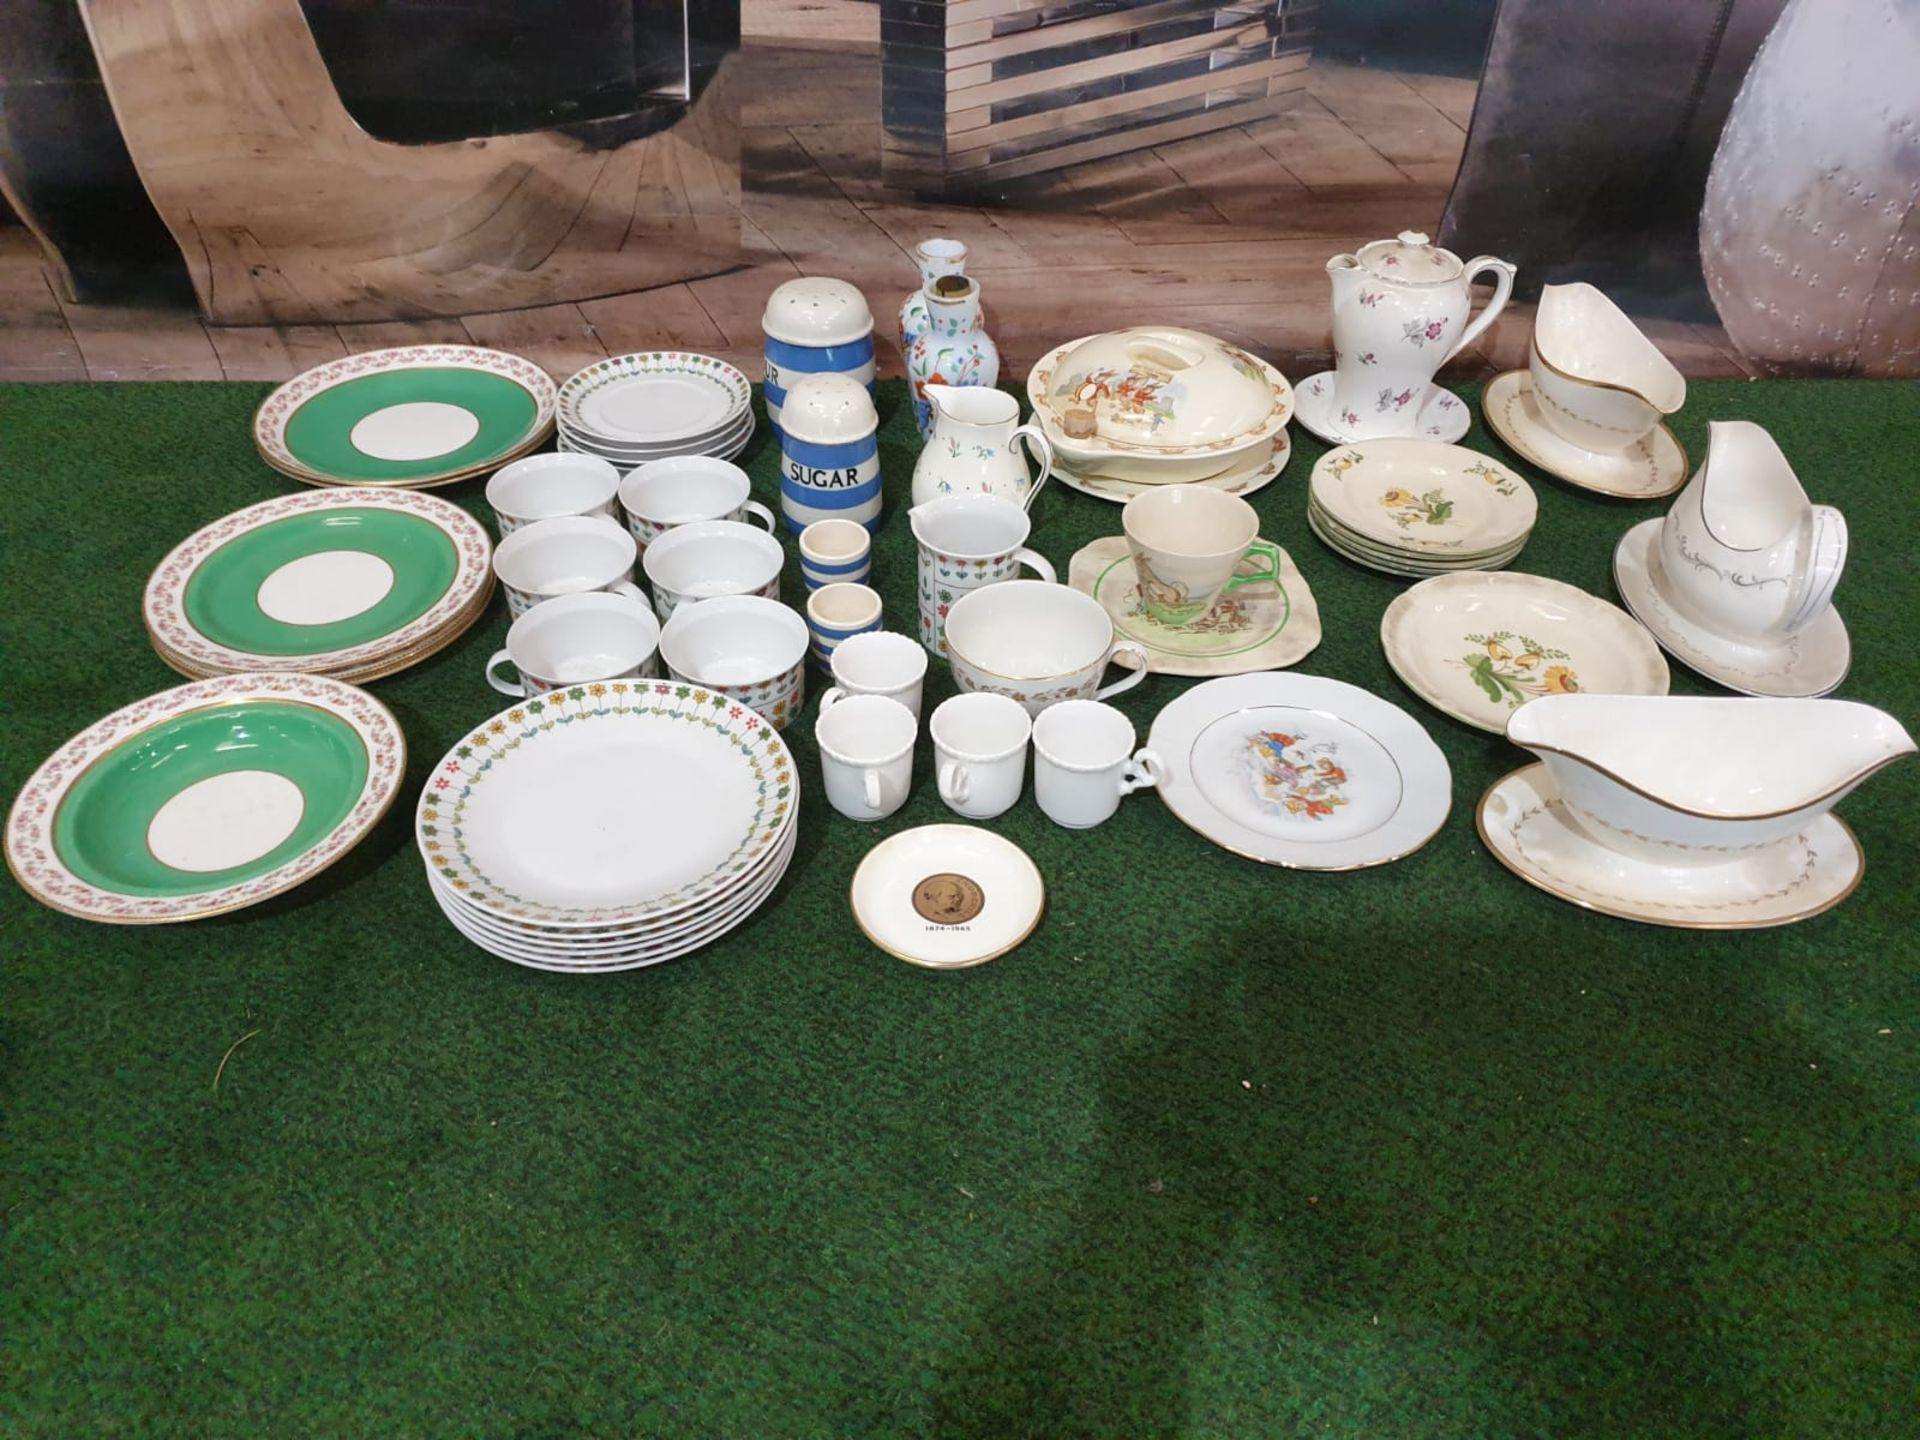 A Large quantity of tableware various patterns and manufacturers including Royal Doulton, Shelley, H